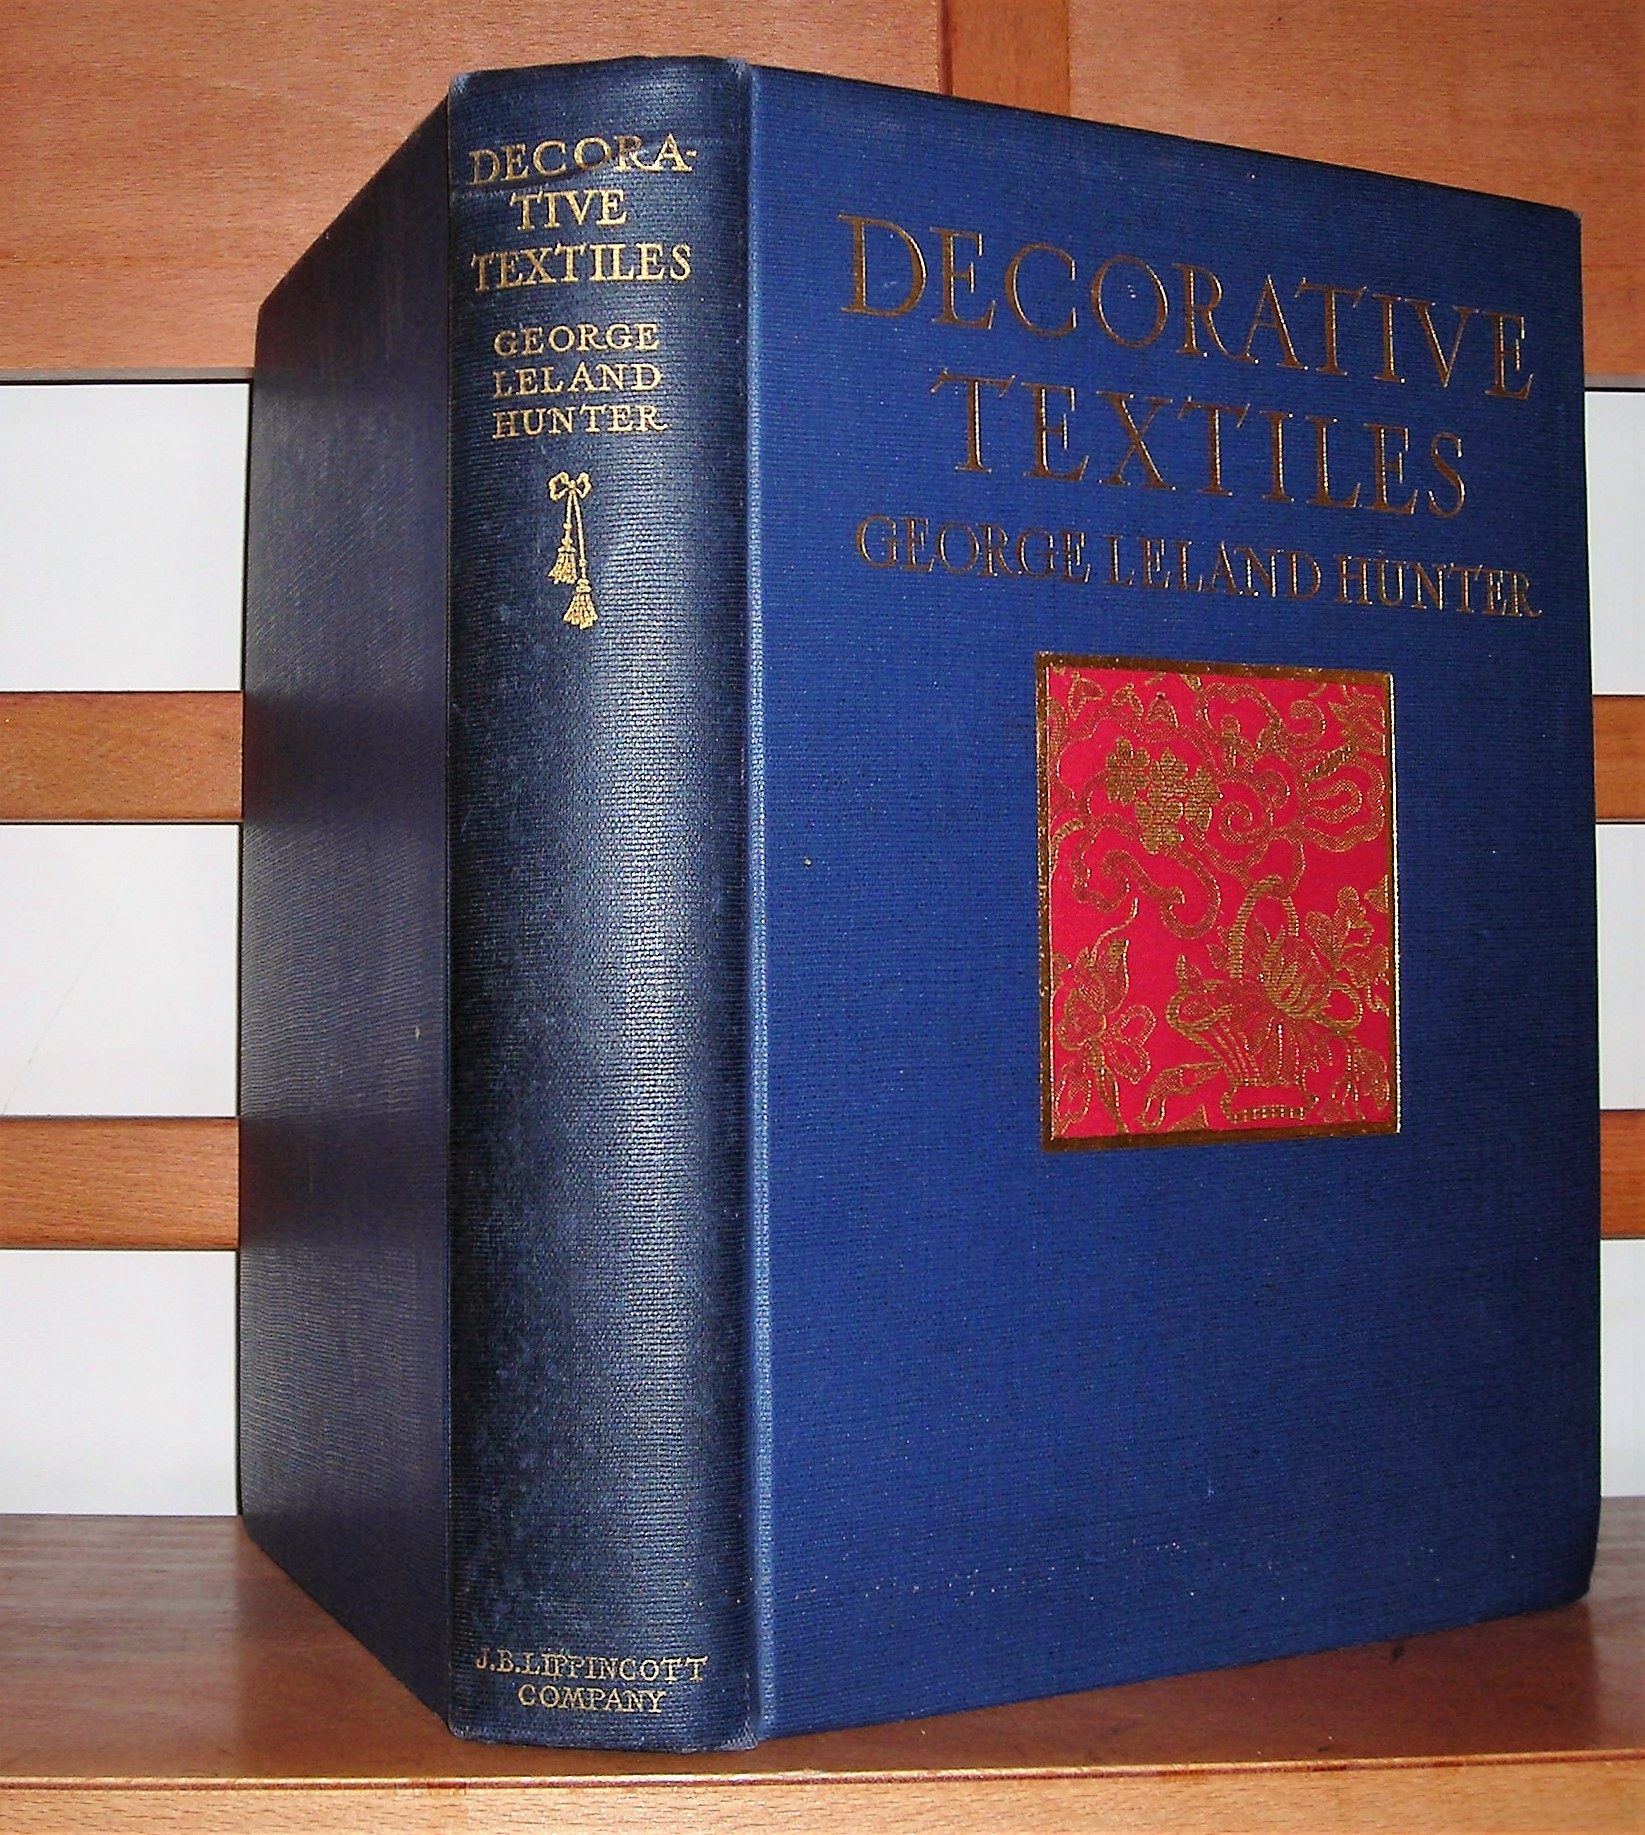 Image for Decorative Textiles An Illustrated Book on Coverings for Furniture, Walls and Floors, Including Damasks, Brocades and Velvets, Tapestries, Laces, Embroideries, Chintzes, Cretonnes, Drapery and Furniture Trimmings, Wall Papers, Carpets and Rugs, Etcetera